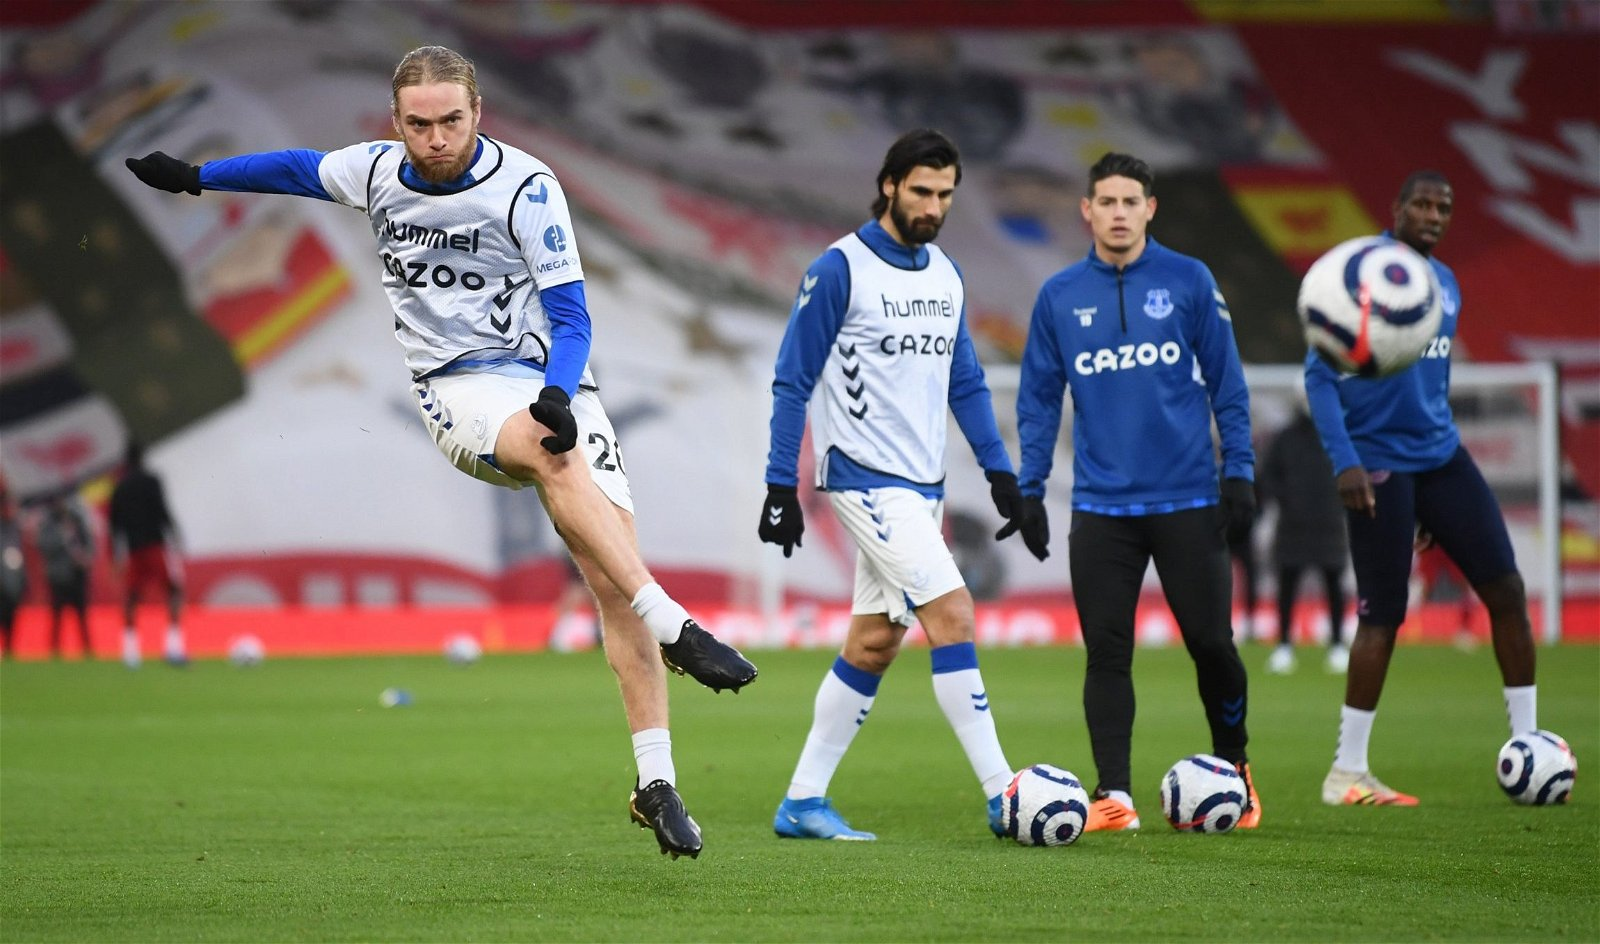 Evertons-tom-davies-during-the-warm-up-before-the-liverpool-match-e1614175261635